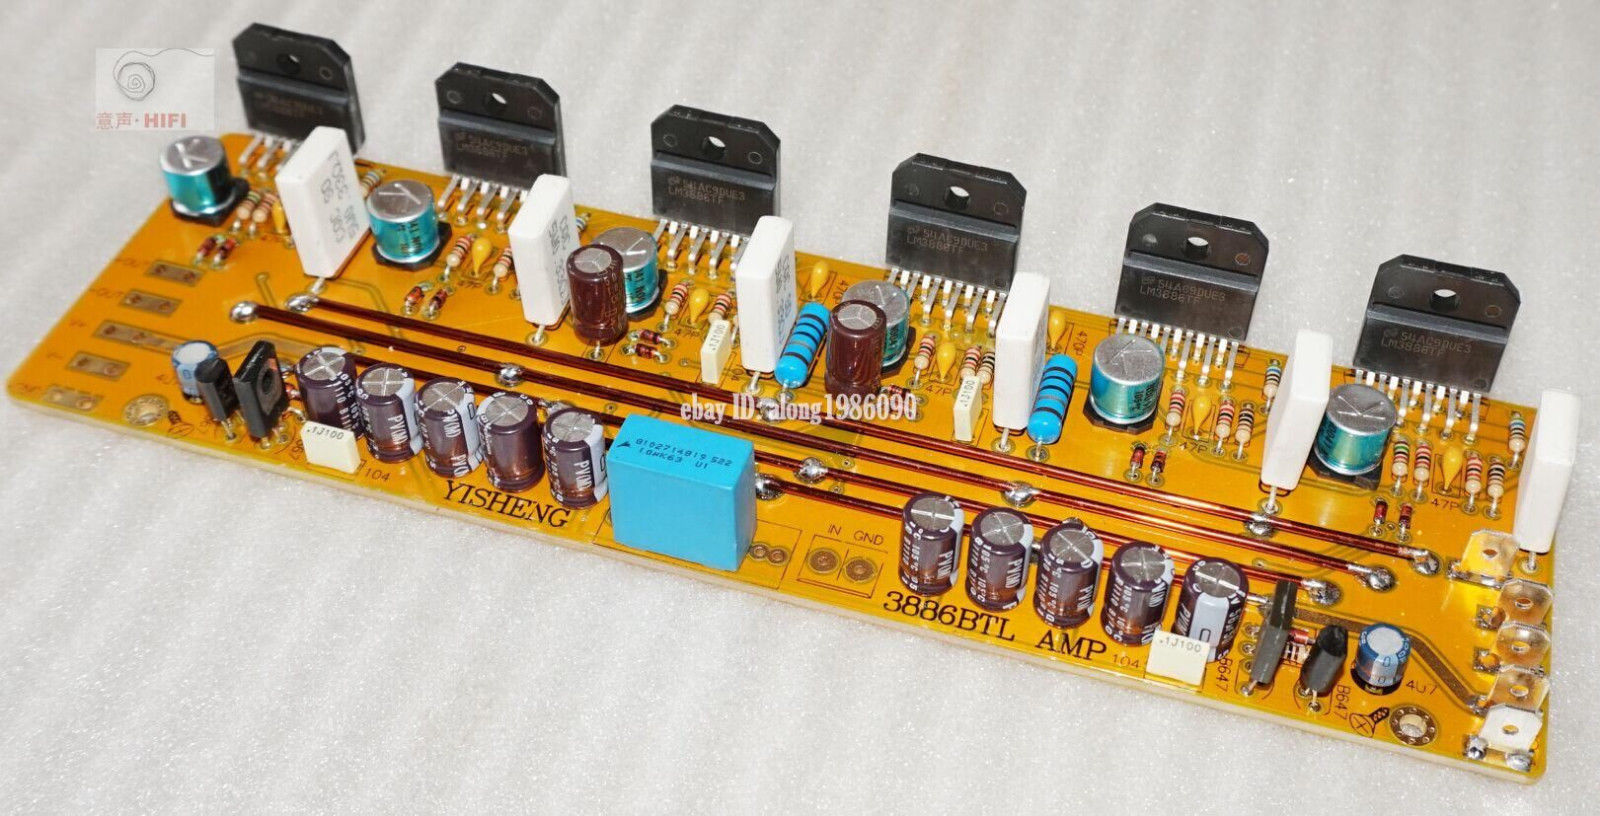 Assembeld Mono LM3886 Hifi Amplifier Board Base On JEFF Rowland LM3886 Power Amplifier assembeld mono lm3886 hifi amplifier board base on jeff rowland lm3886 power amplifier